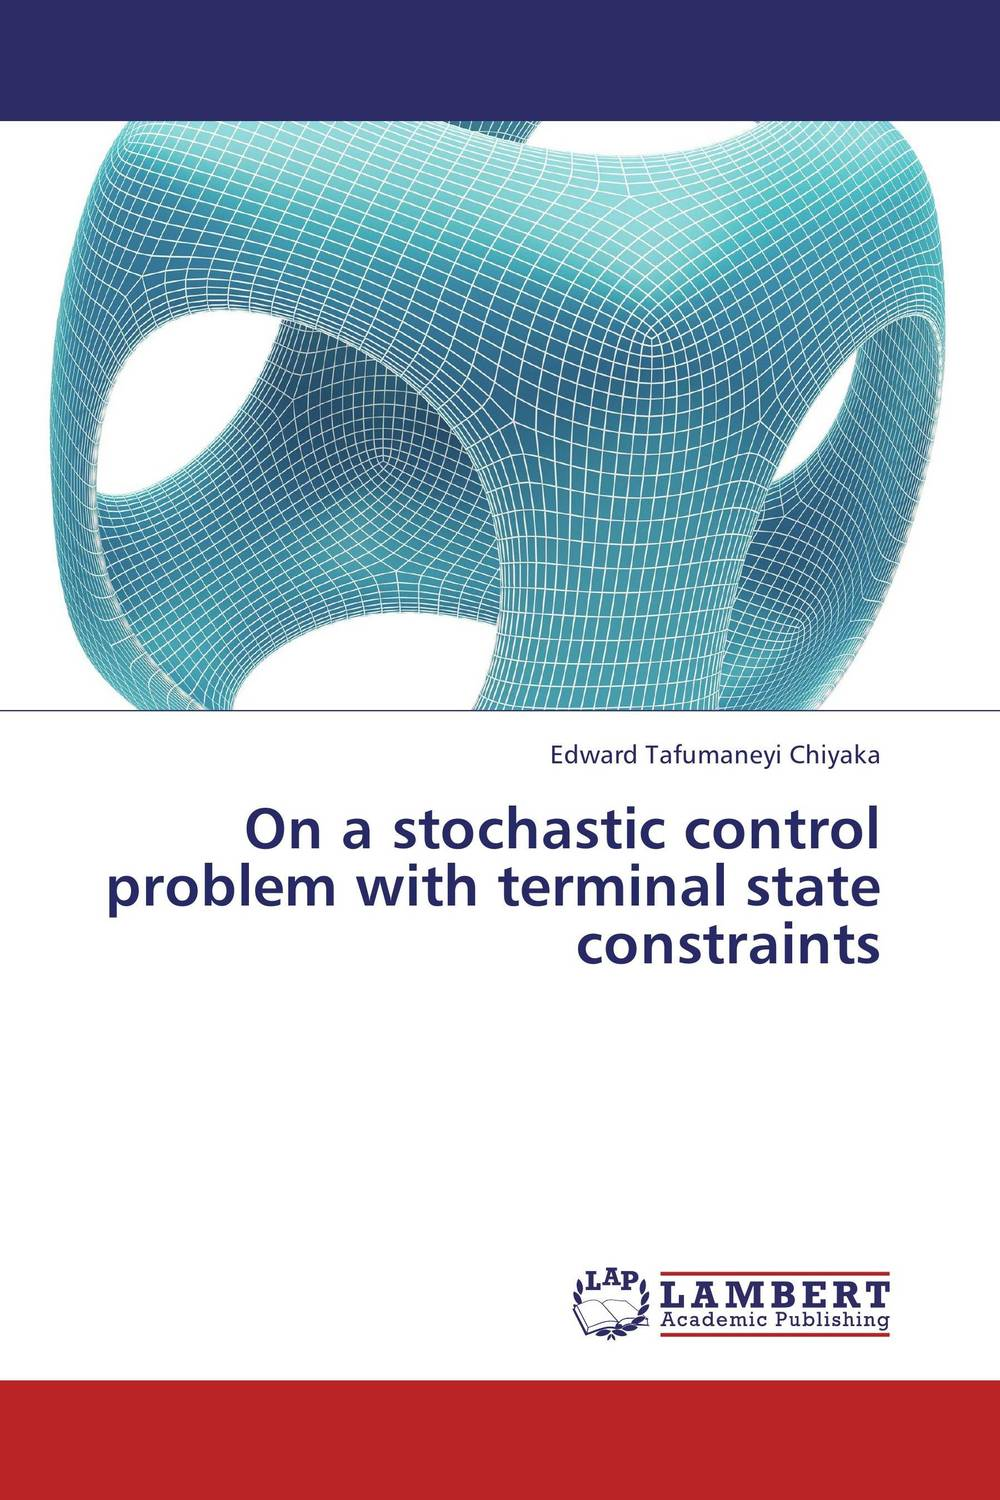 On a stochastic control problem with terminal state constraints stochastic processes with memory